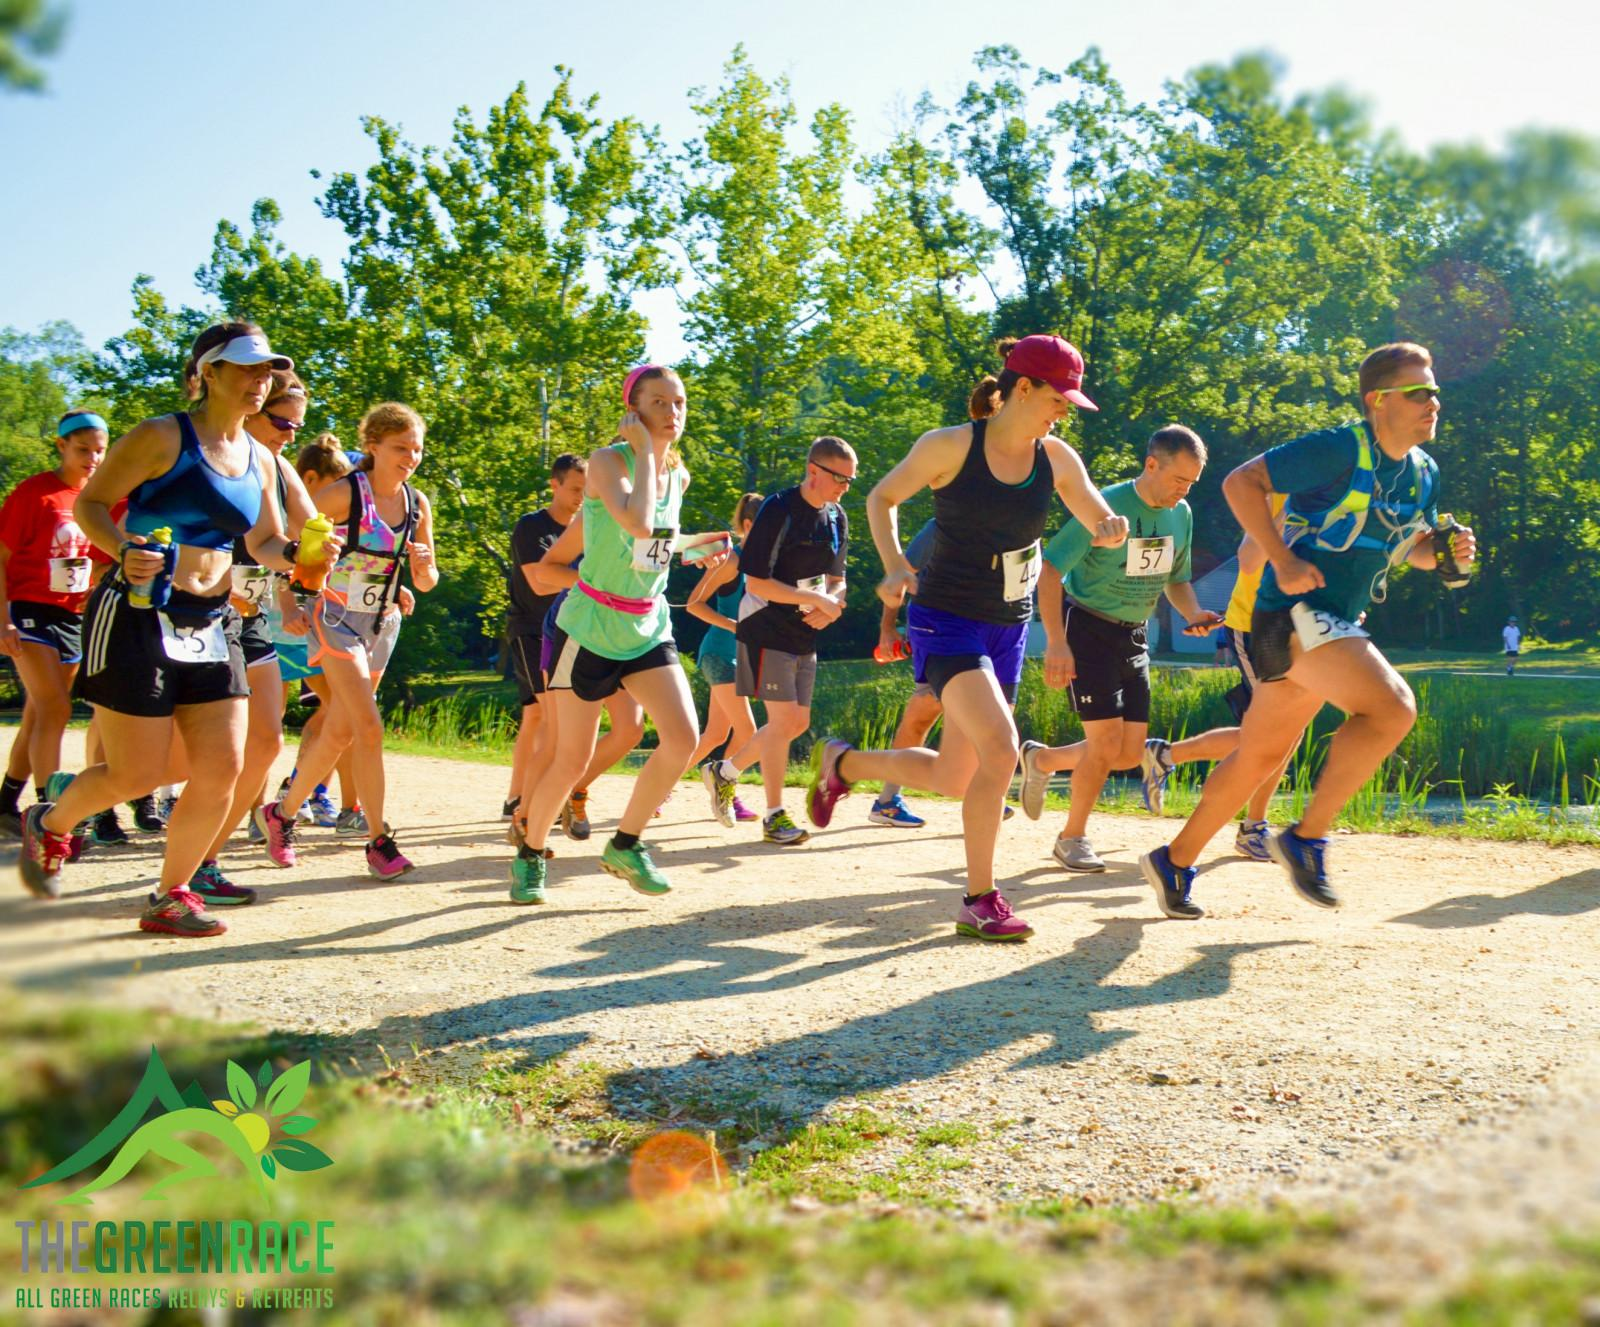 2016 Maryland GreenRace C&O Towpath 5K/10K Start Line Photo